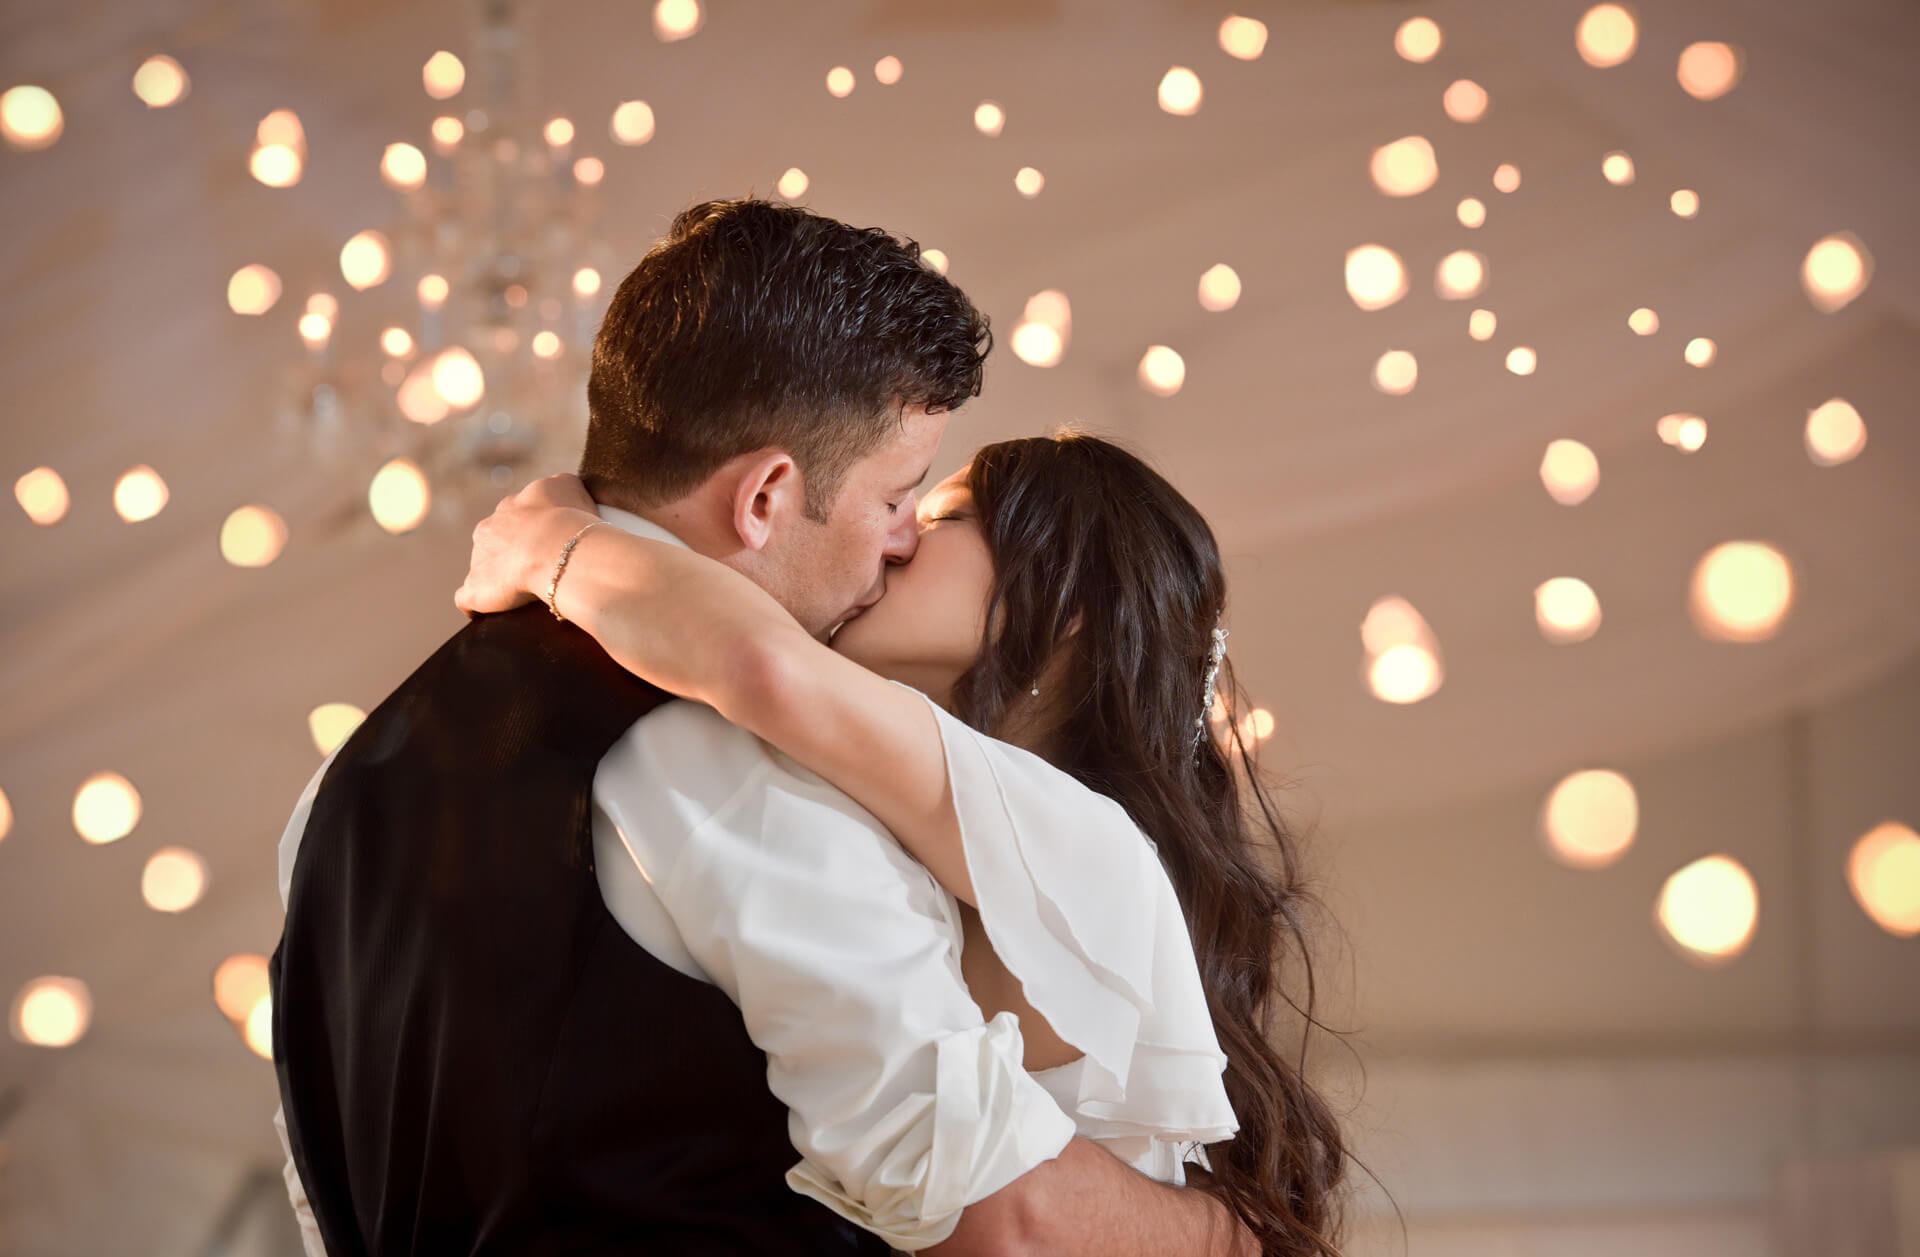 The groom and bride smooch during their first dance after a hot wedding day at Waldenwoods Resort in Howell, Michigan during the pandemic.